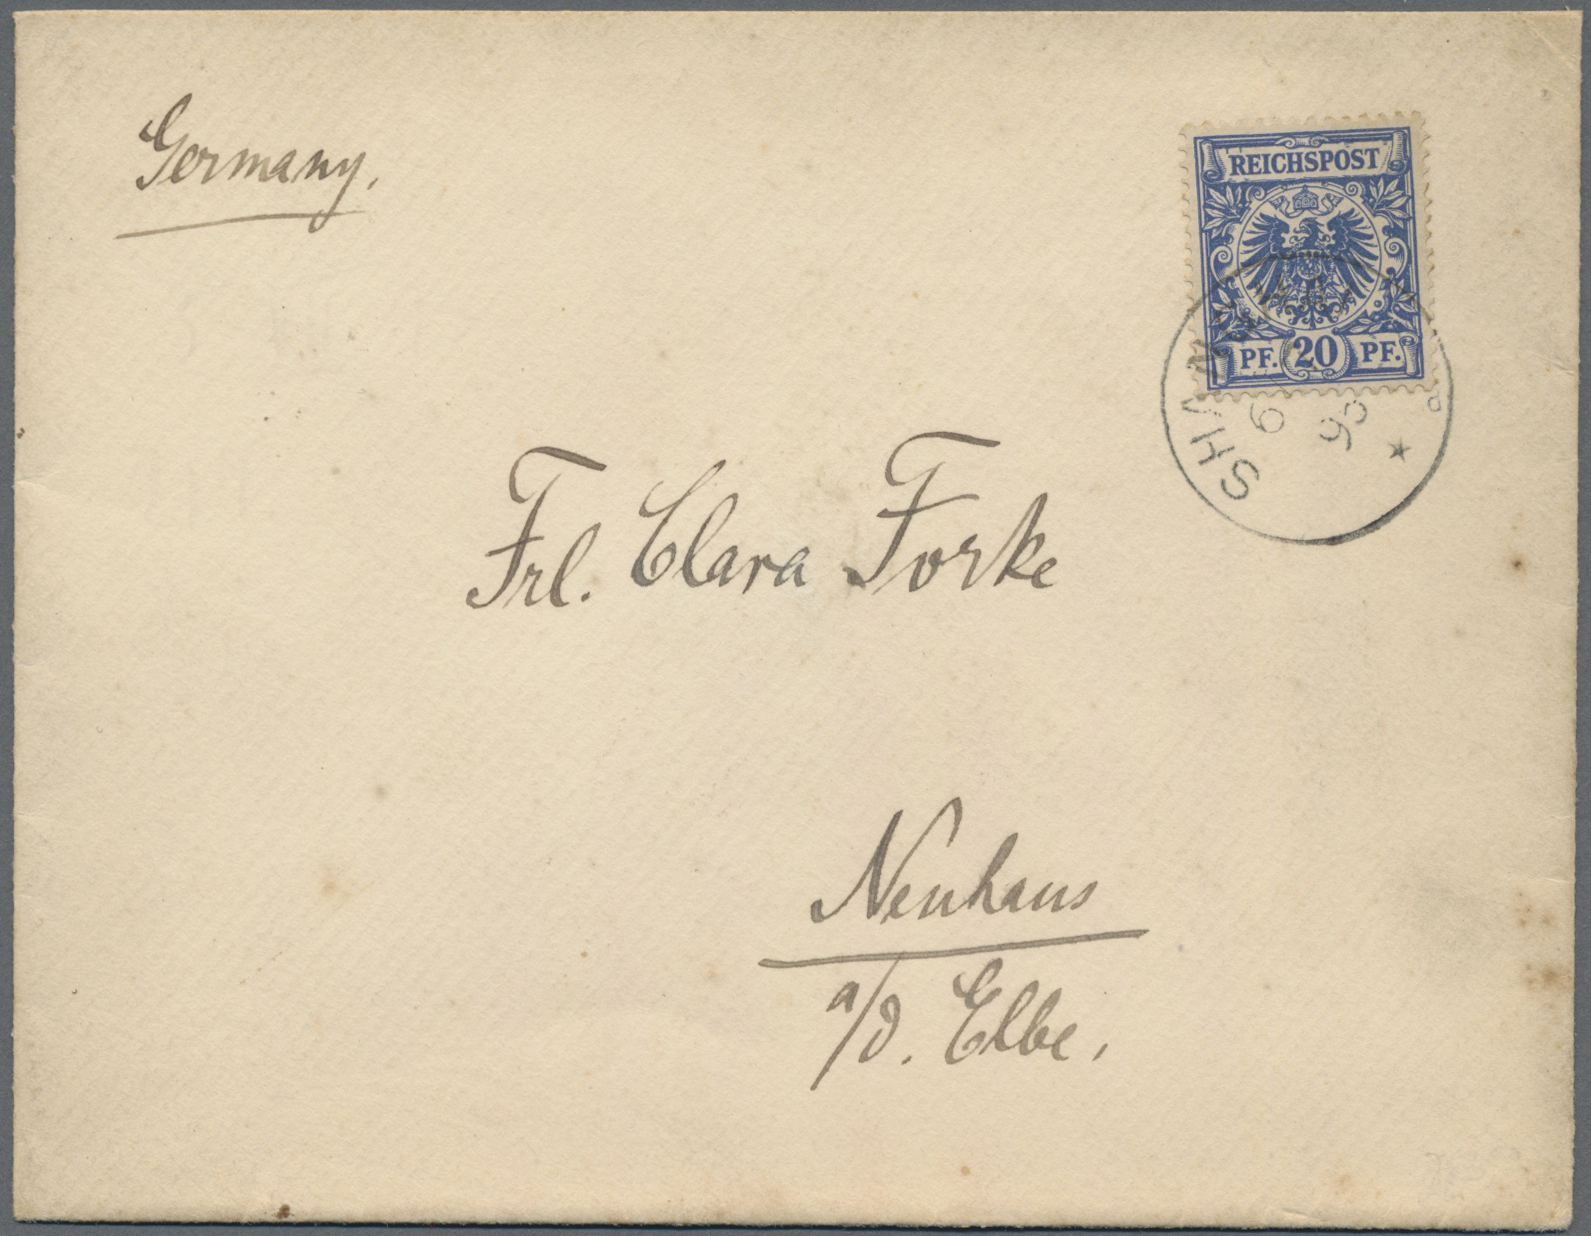 Lot 10306 - China - Fremde Postanstalten / Foreign Offices  -  Auktionshaus Christoph Gärtner GmbH & Co. KG Sale #47 Single lots: Asia, Thematics, Overseas, Europe